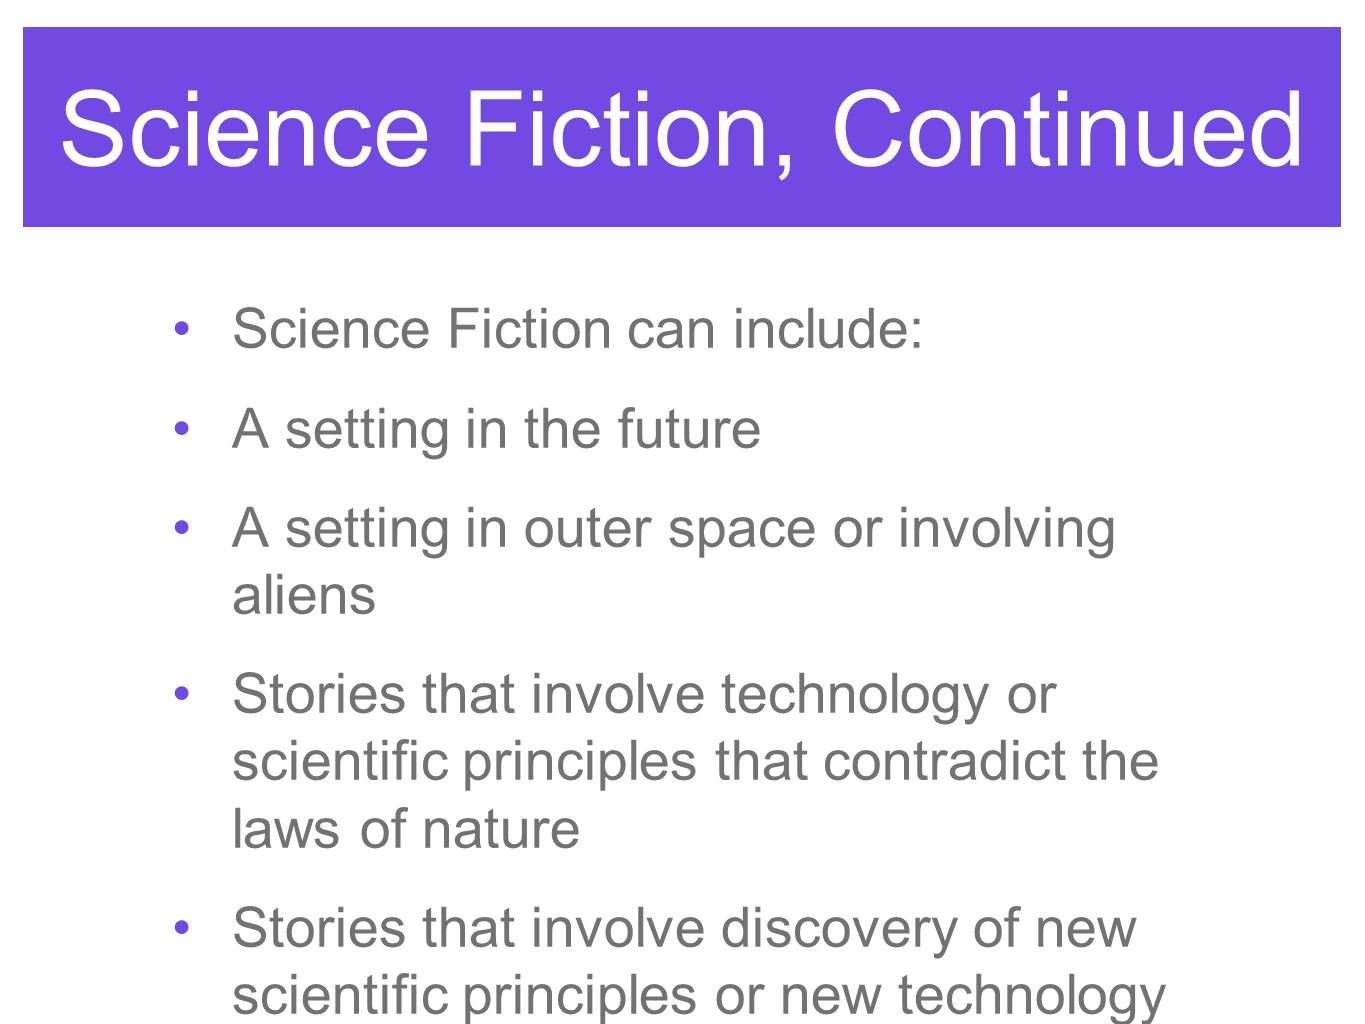 Science Fiction, Continued